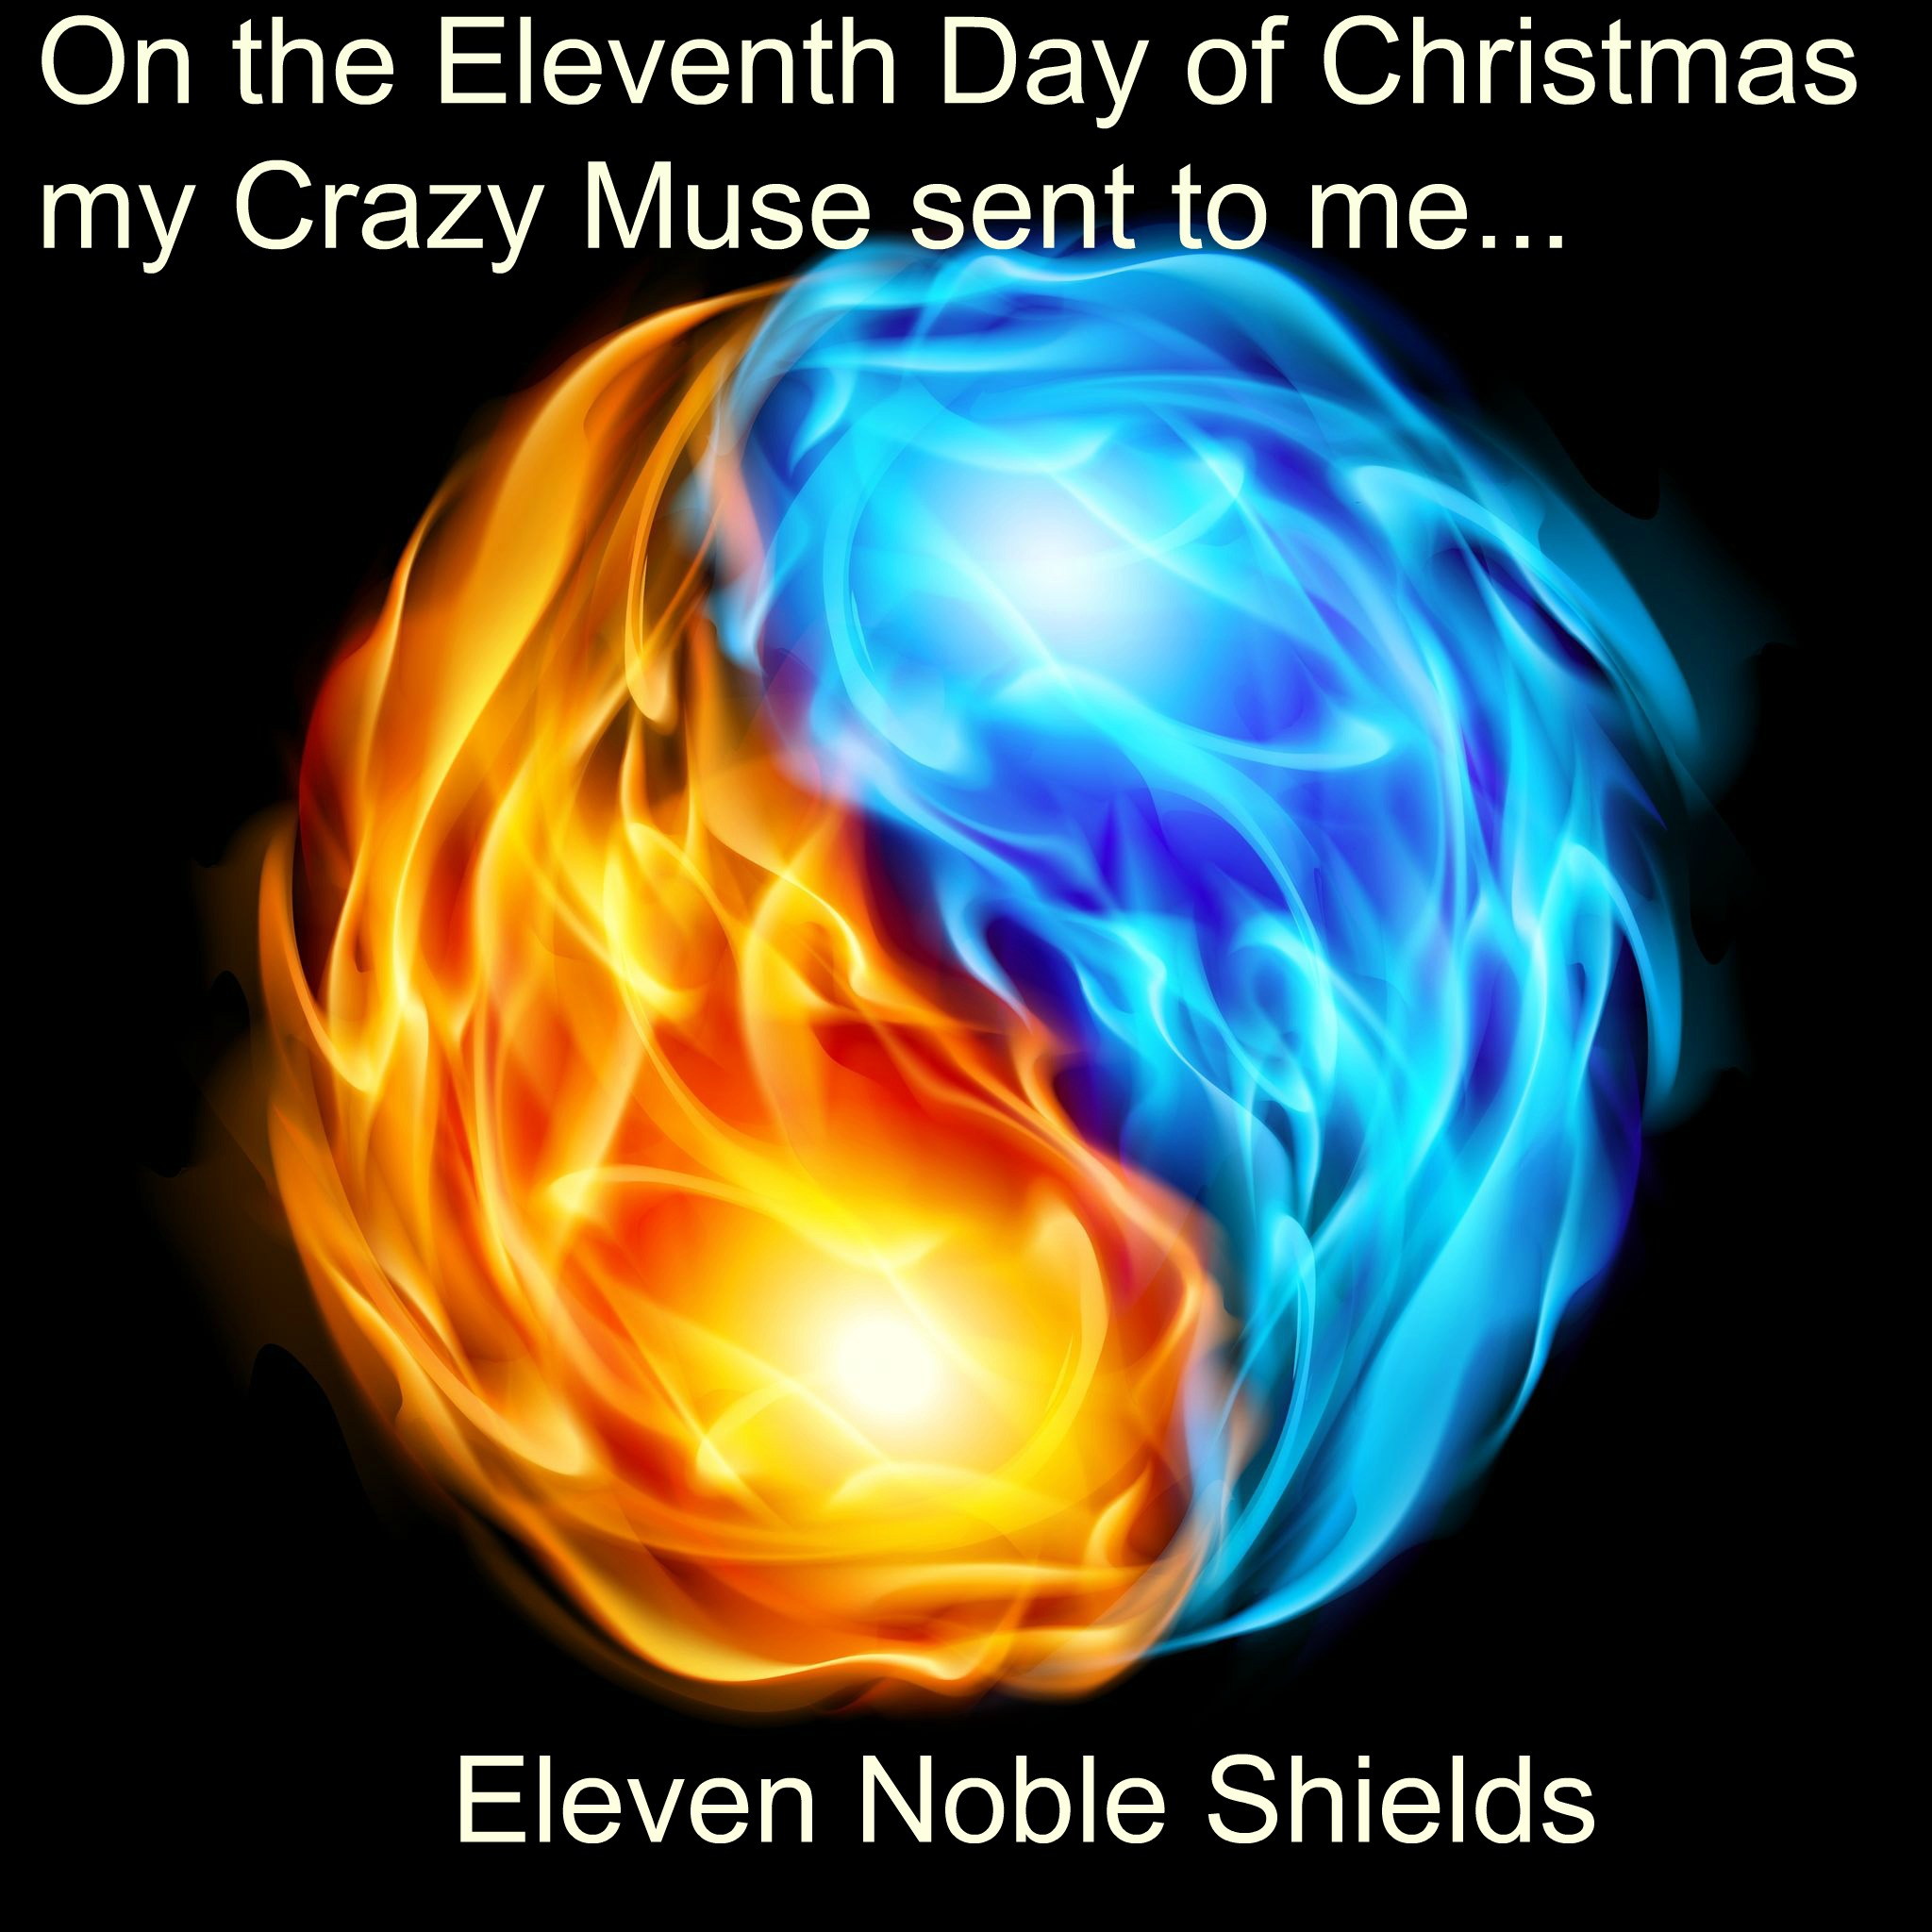 On the Eleventh Day of Christmas my Crazy Muse sent to me…